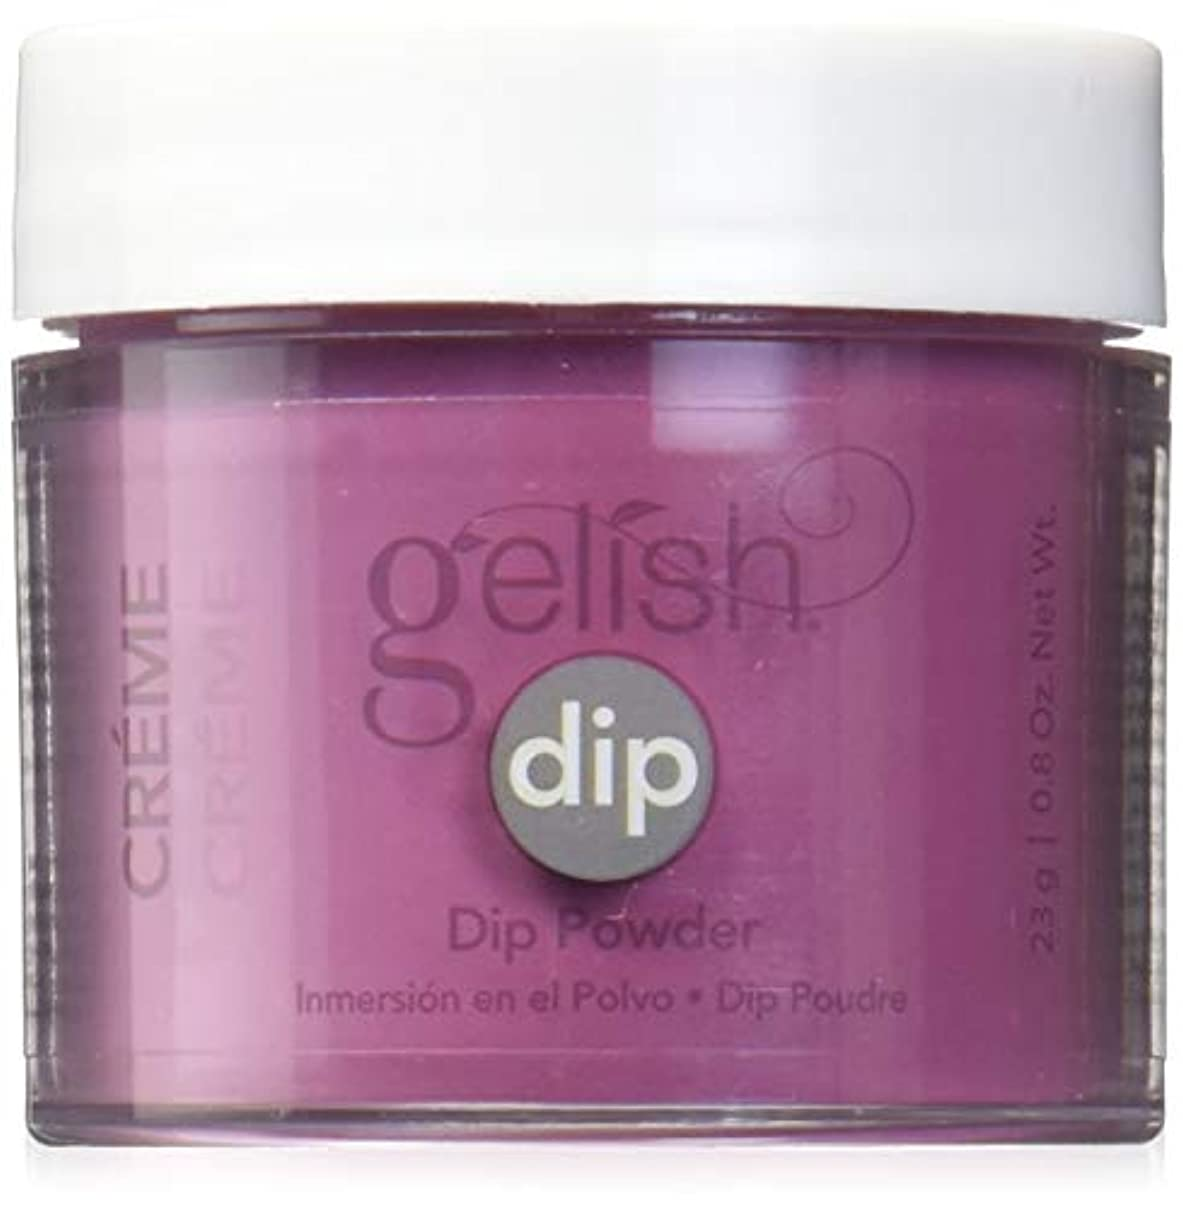 グレーお願いしますアダルトHarmony Gelish - Acrylic Dip Powder - A Touch of Sass - 23g / 0.8oz